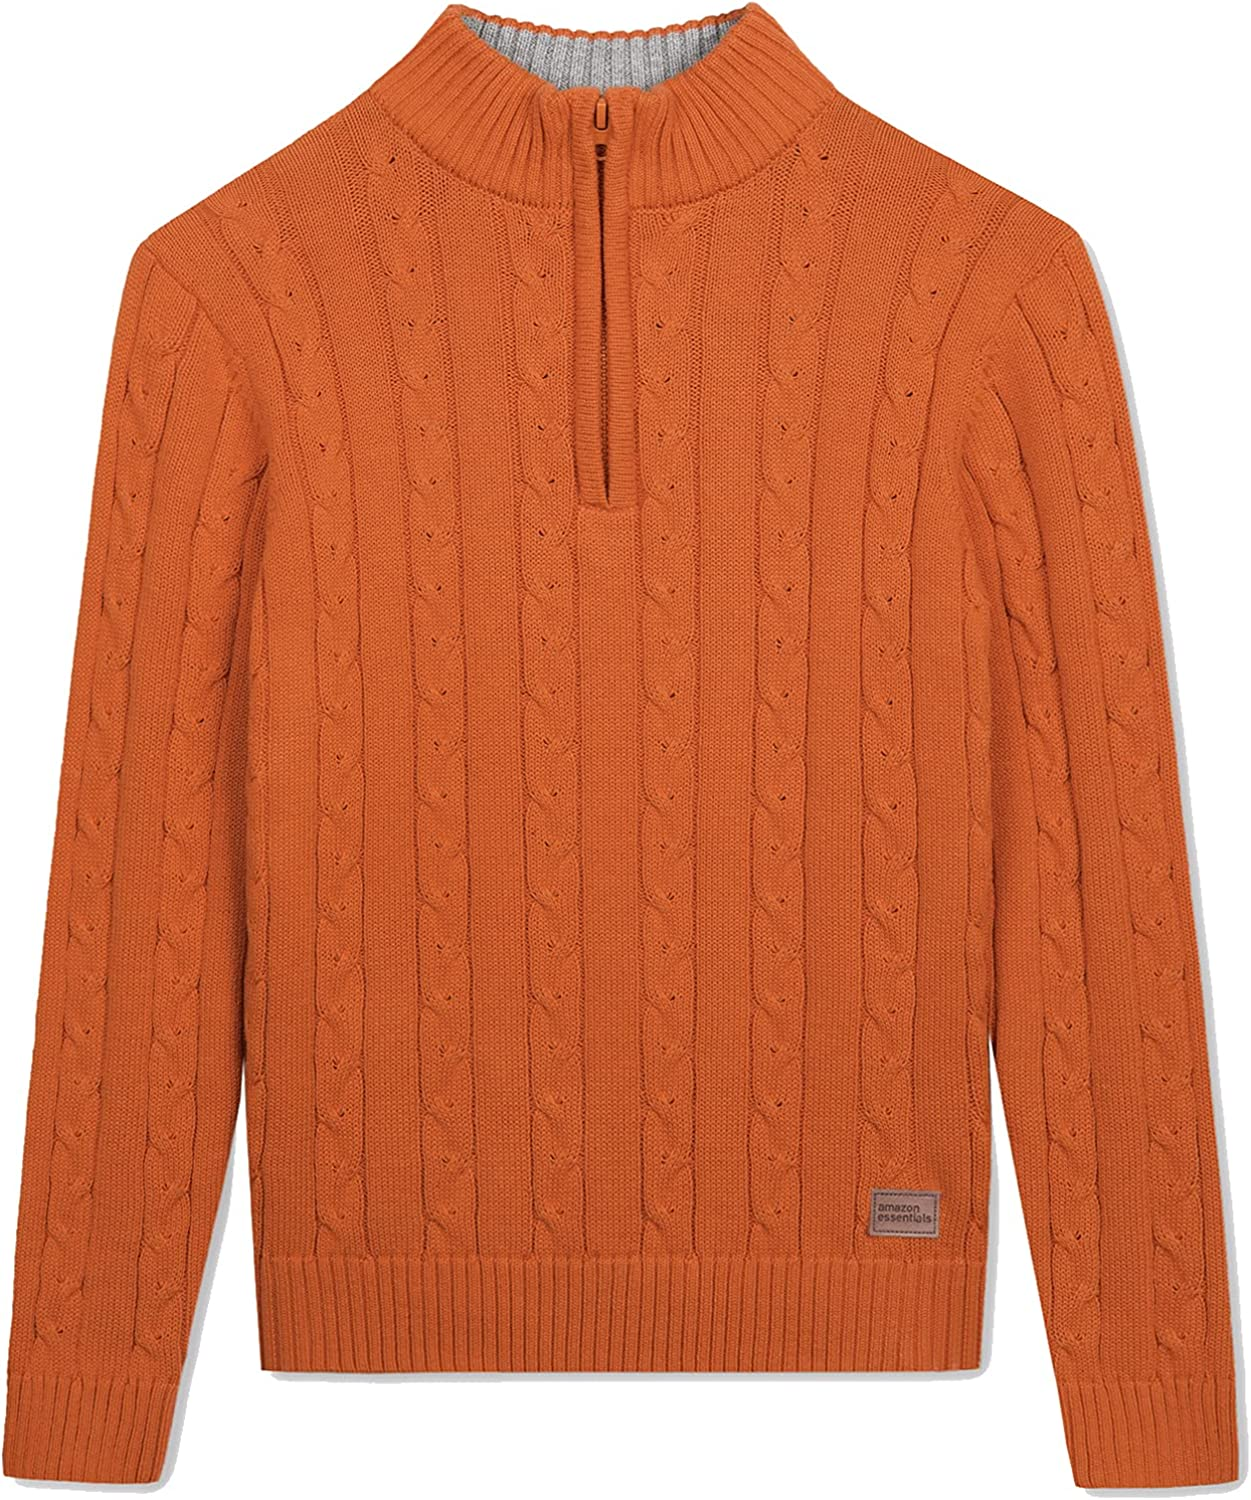 Amazon Essentials 1/4 Zip Sweater Casual Cable Knit Long Sleeve Pullover Sweatshirt for Boys Orange 7-8Y